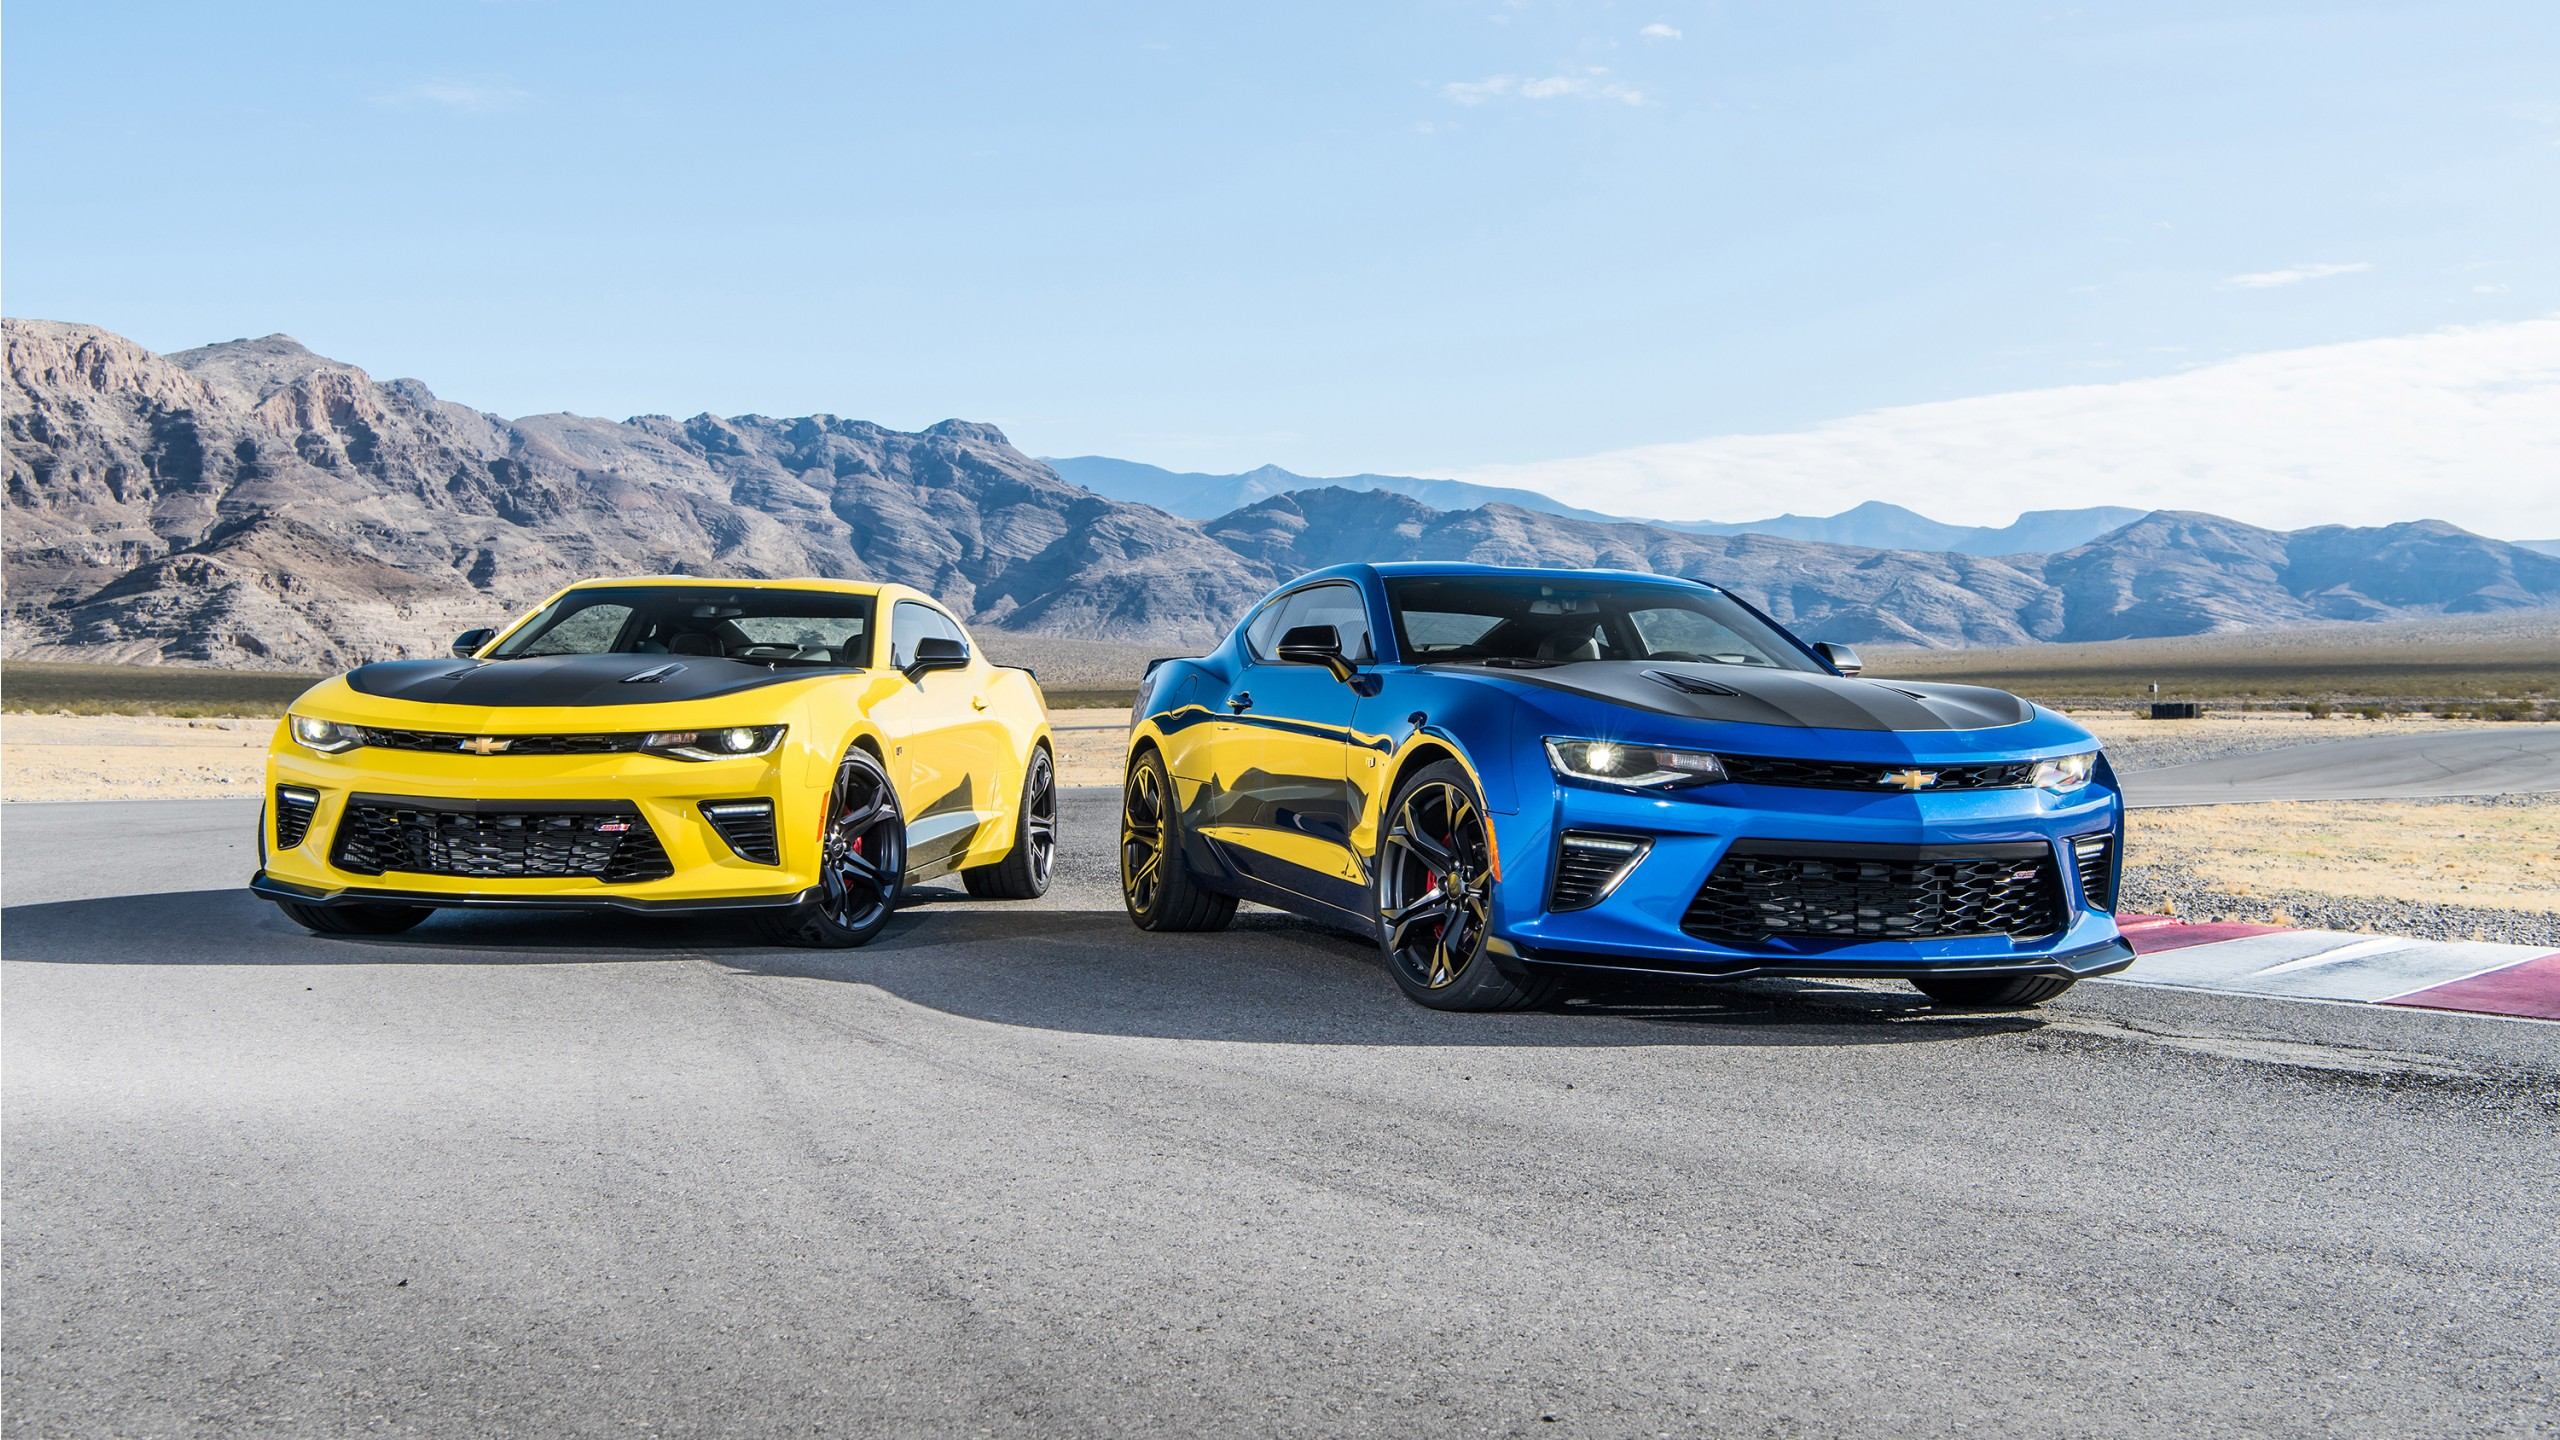 2017 Chevrolet Camaro Ss Wallpaper Hd Car Wallpapers Id 7167